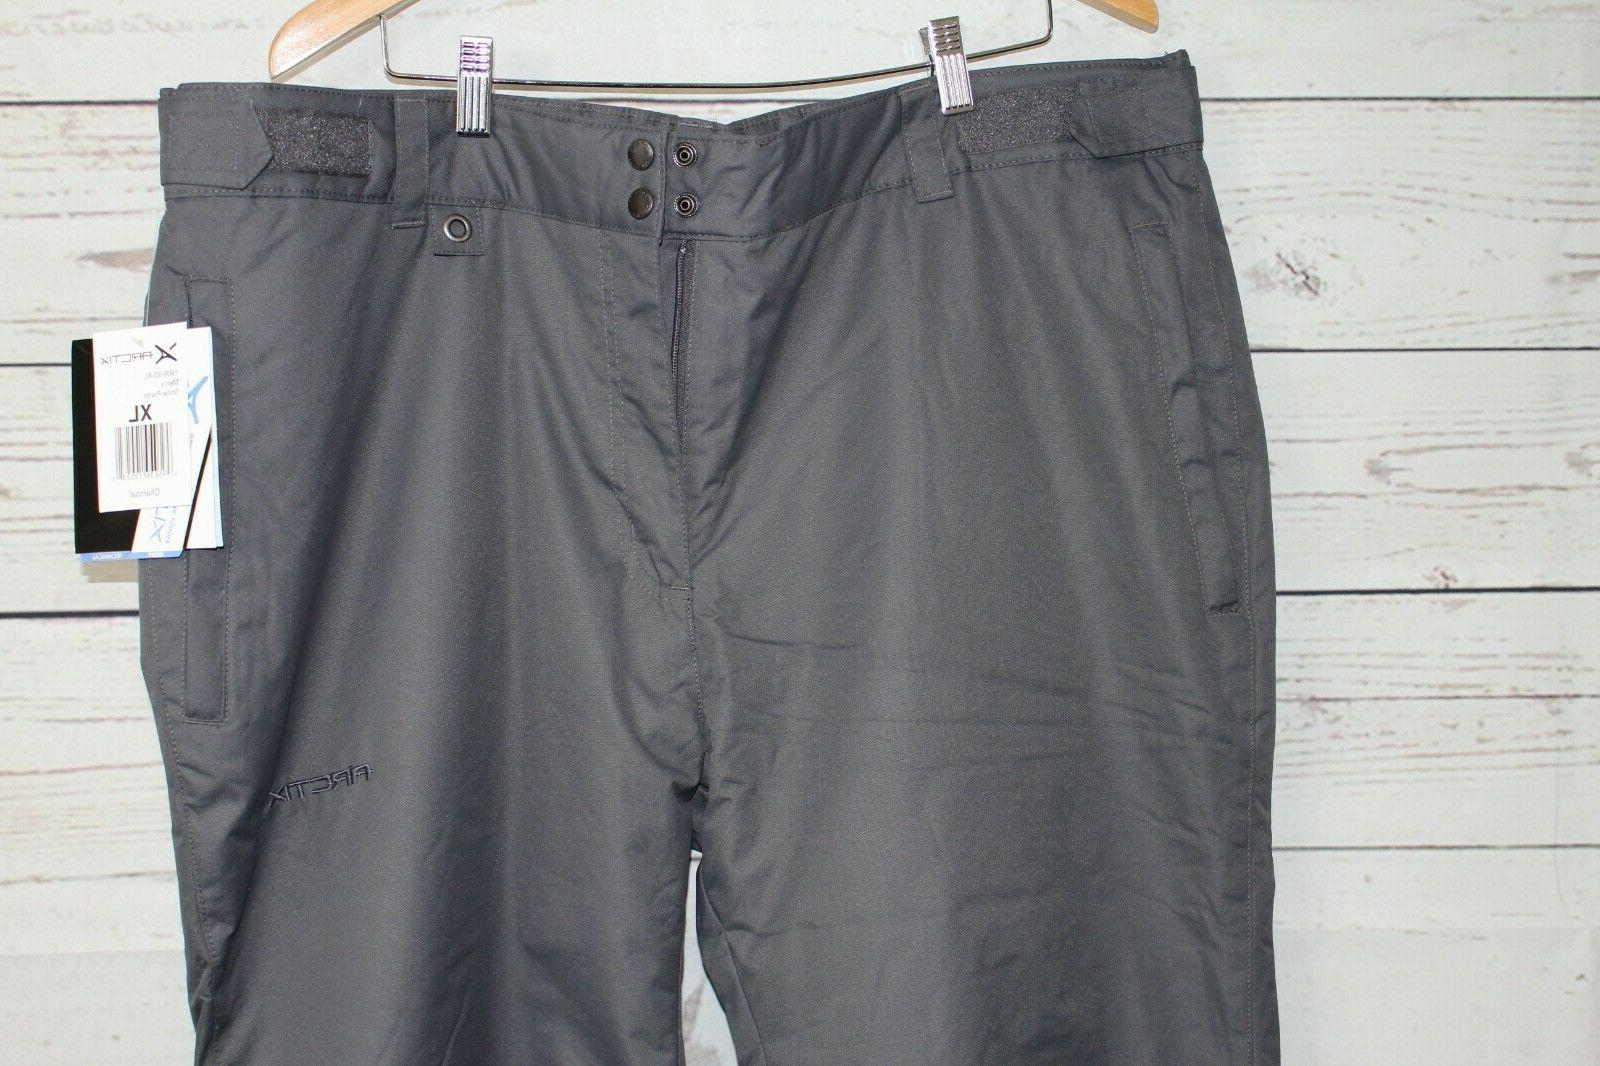 NWT Insulated Snow Pant, Black, Choose Gender and